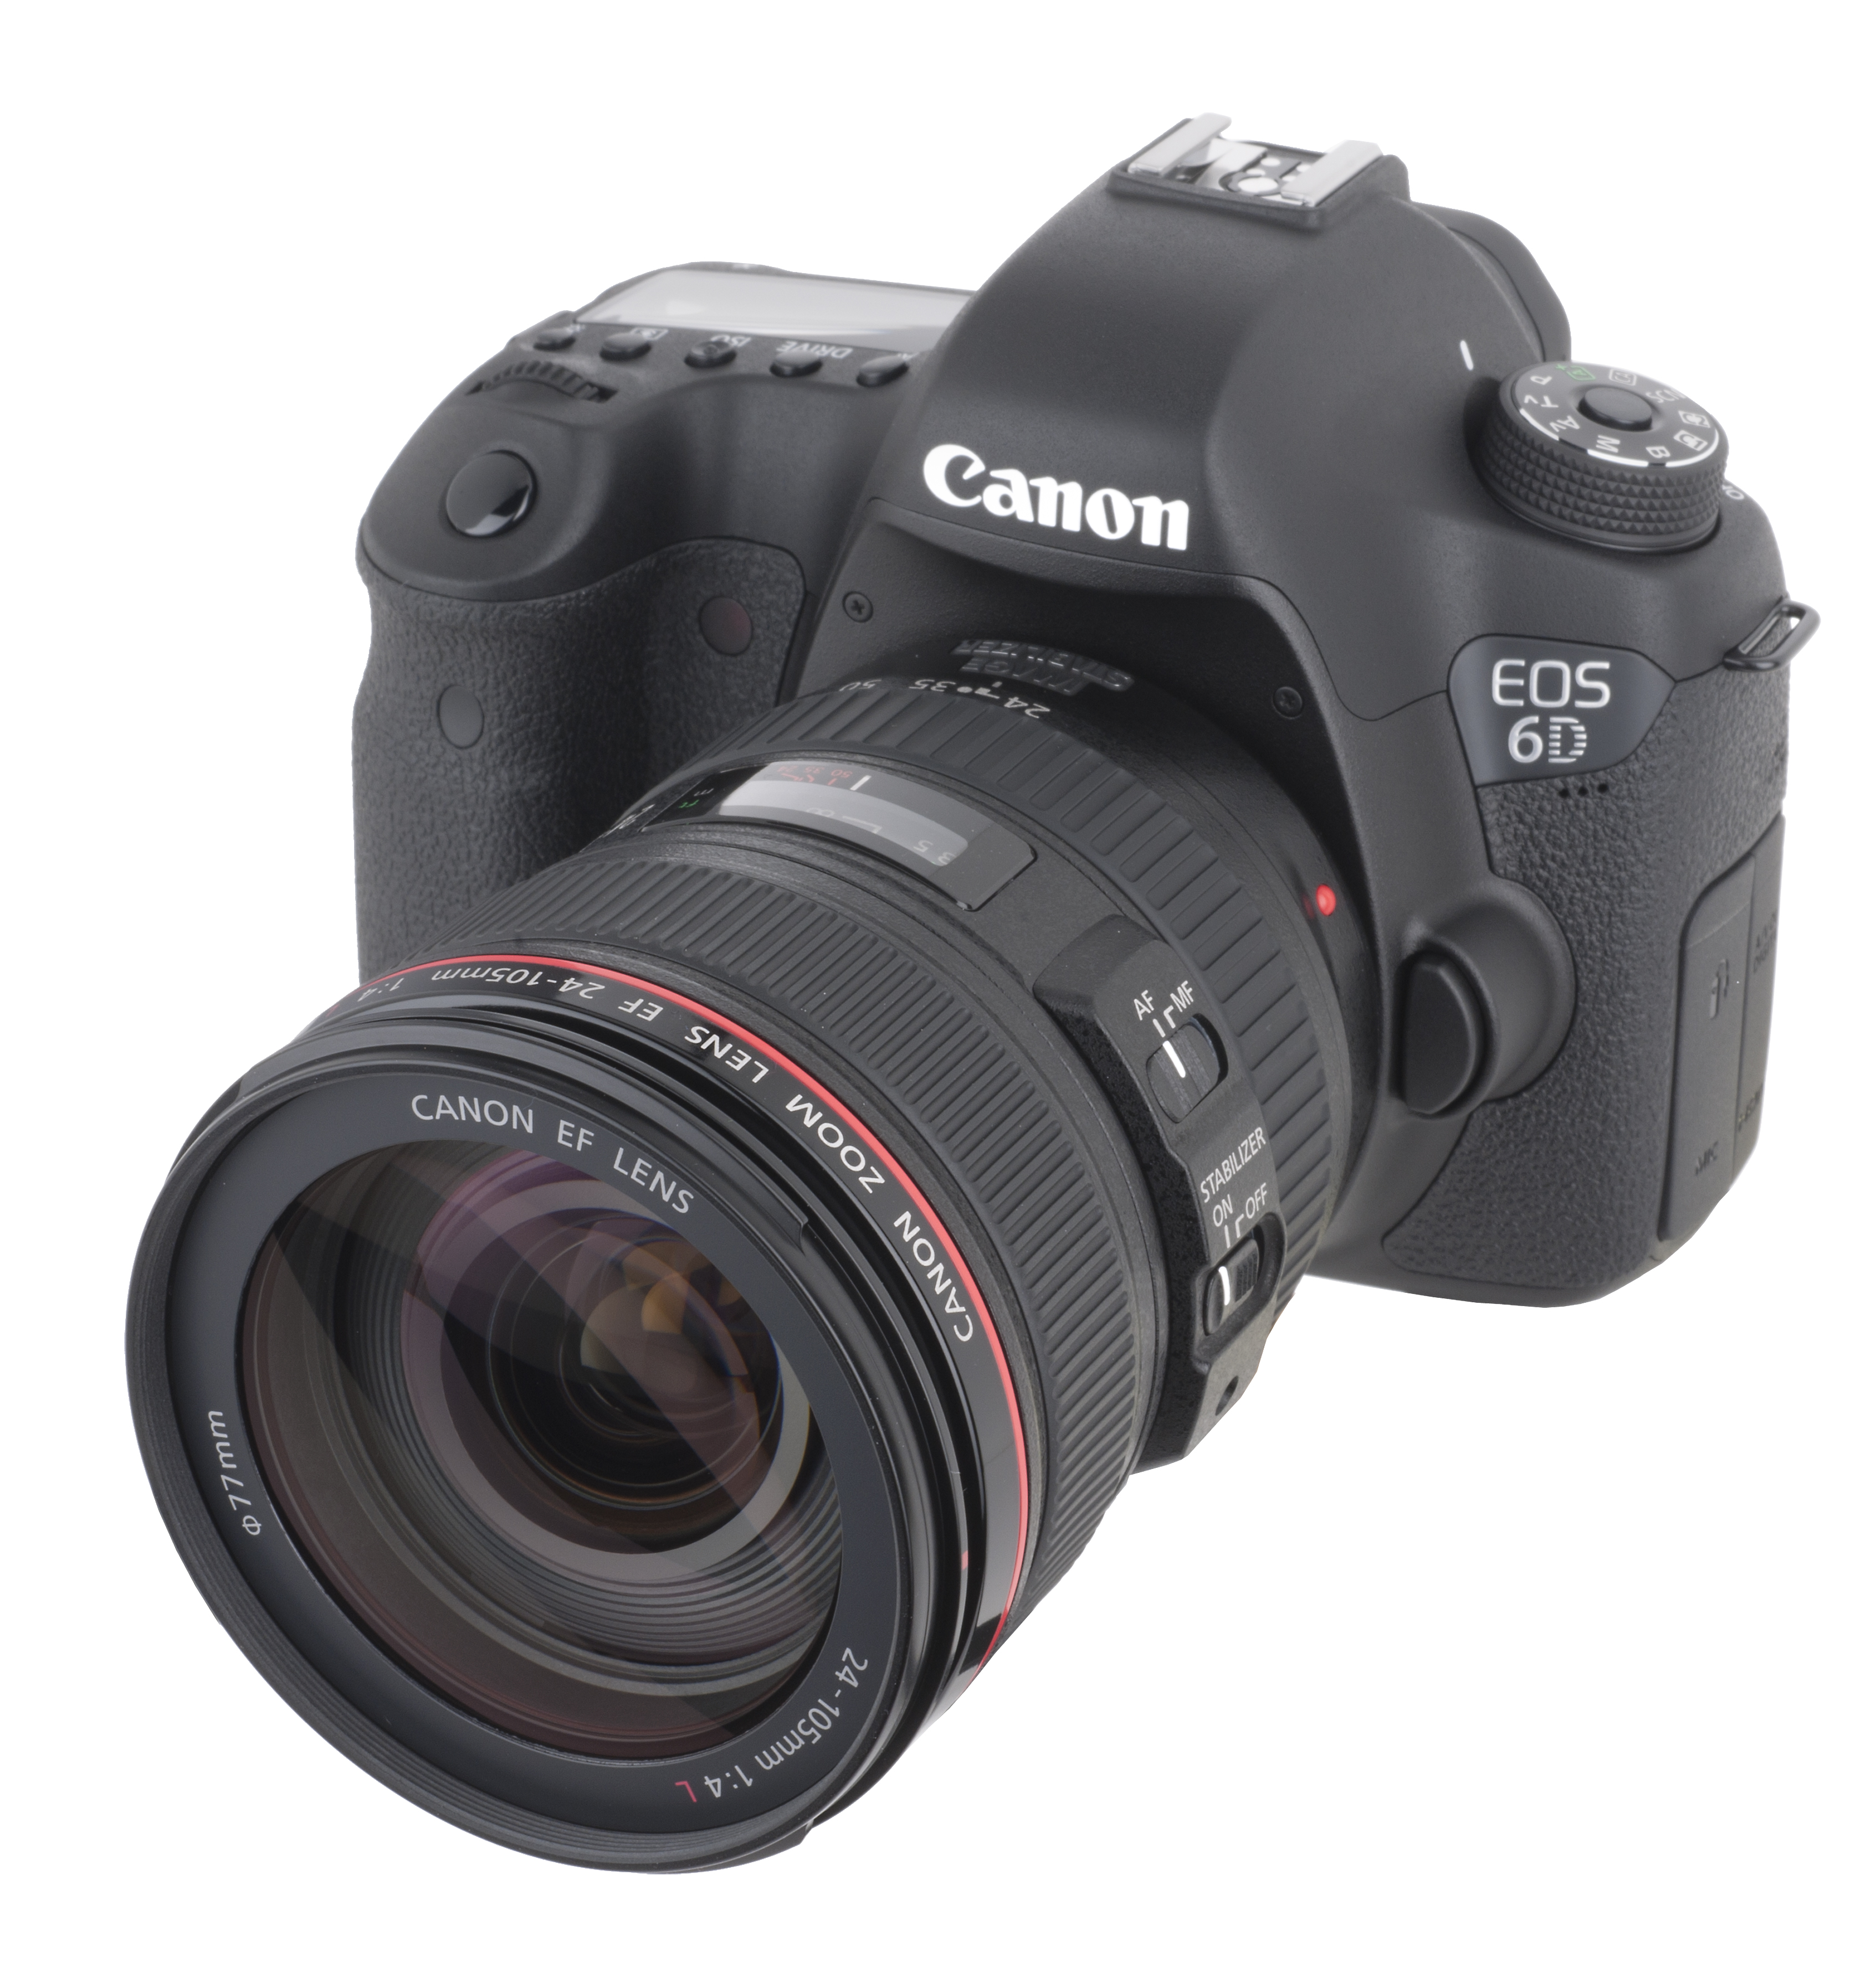 Canon EOS 6D com o zoom EF 24-105 mm f/4L IS USM.